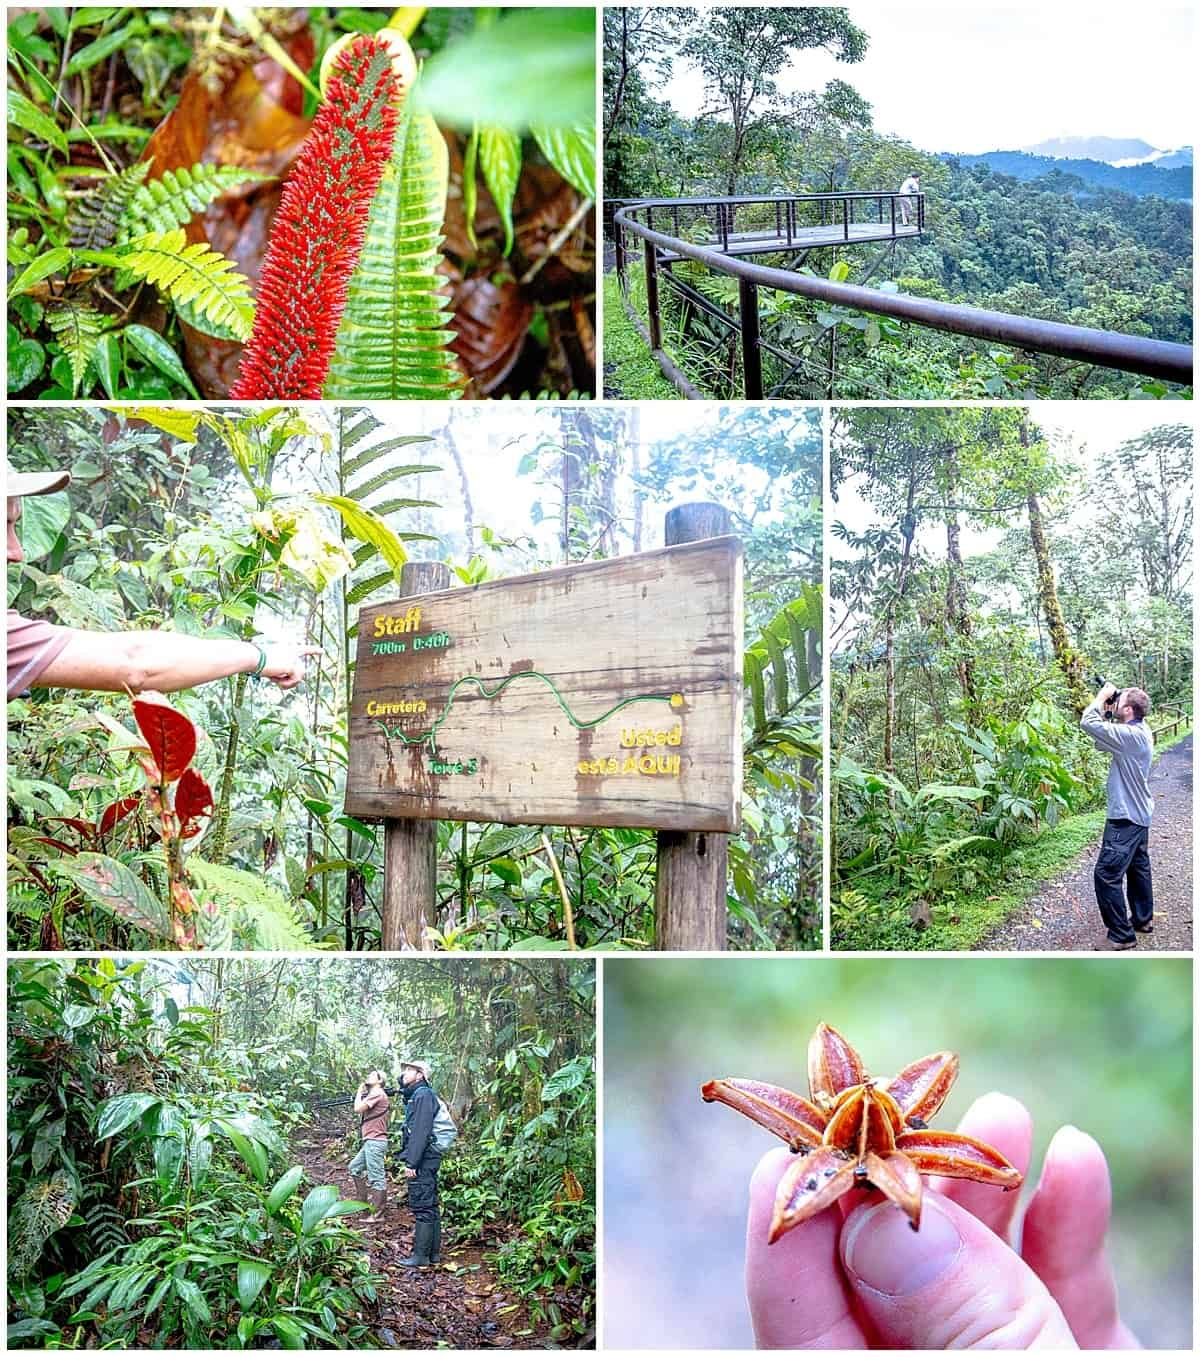 Many activities available at the Mashpi Lodge in Ecuador Cloud Forest - signpost, plants and new stars